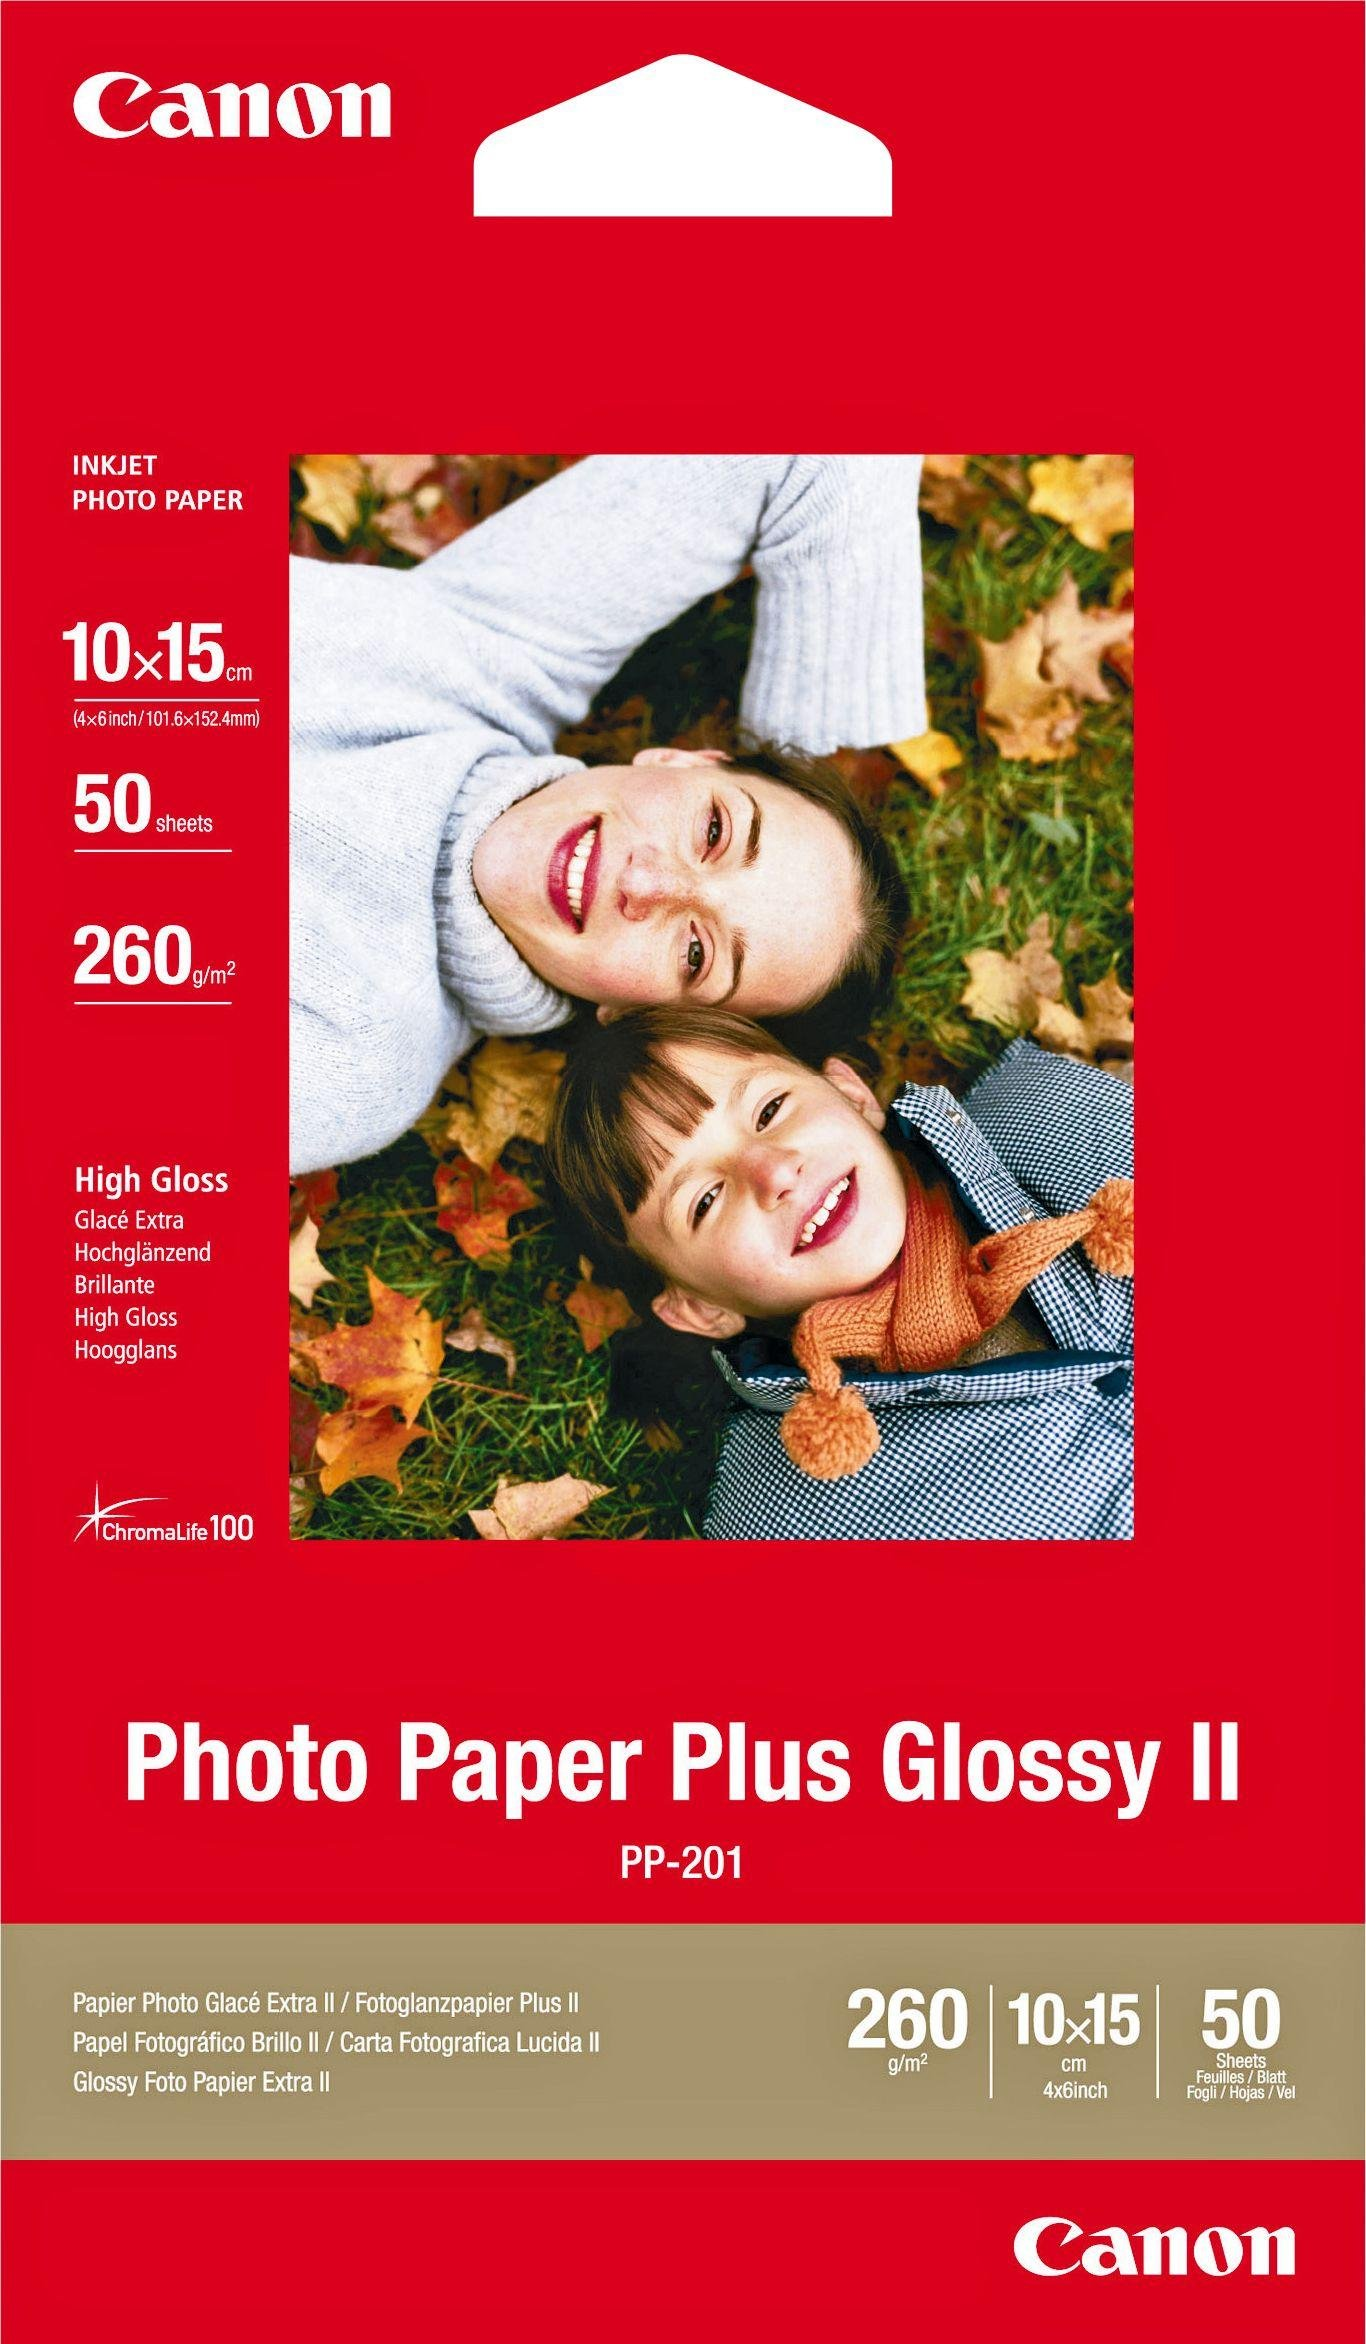 Canon Glossy 6 x 4 Inch Photo Paper - 50 Sheets